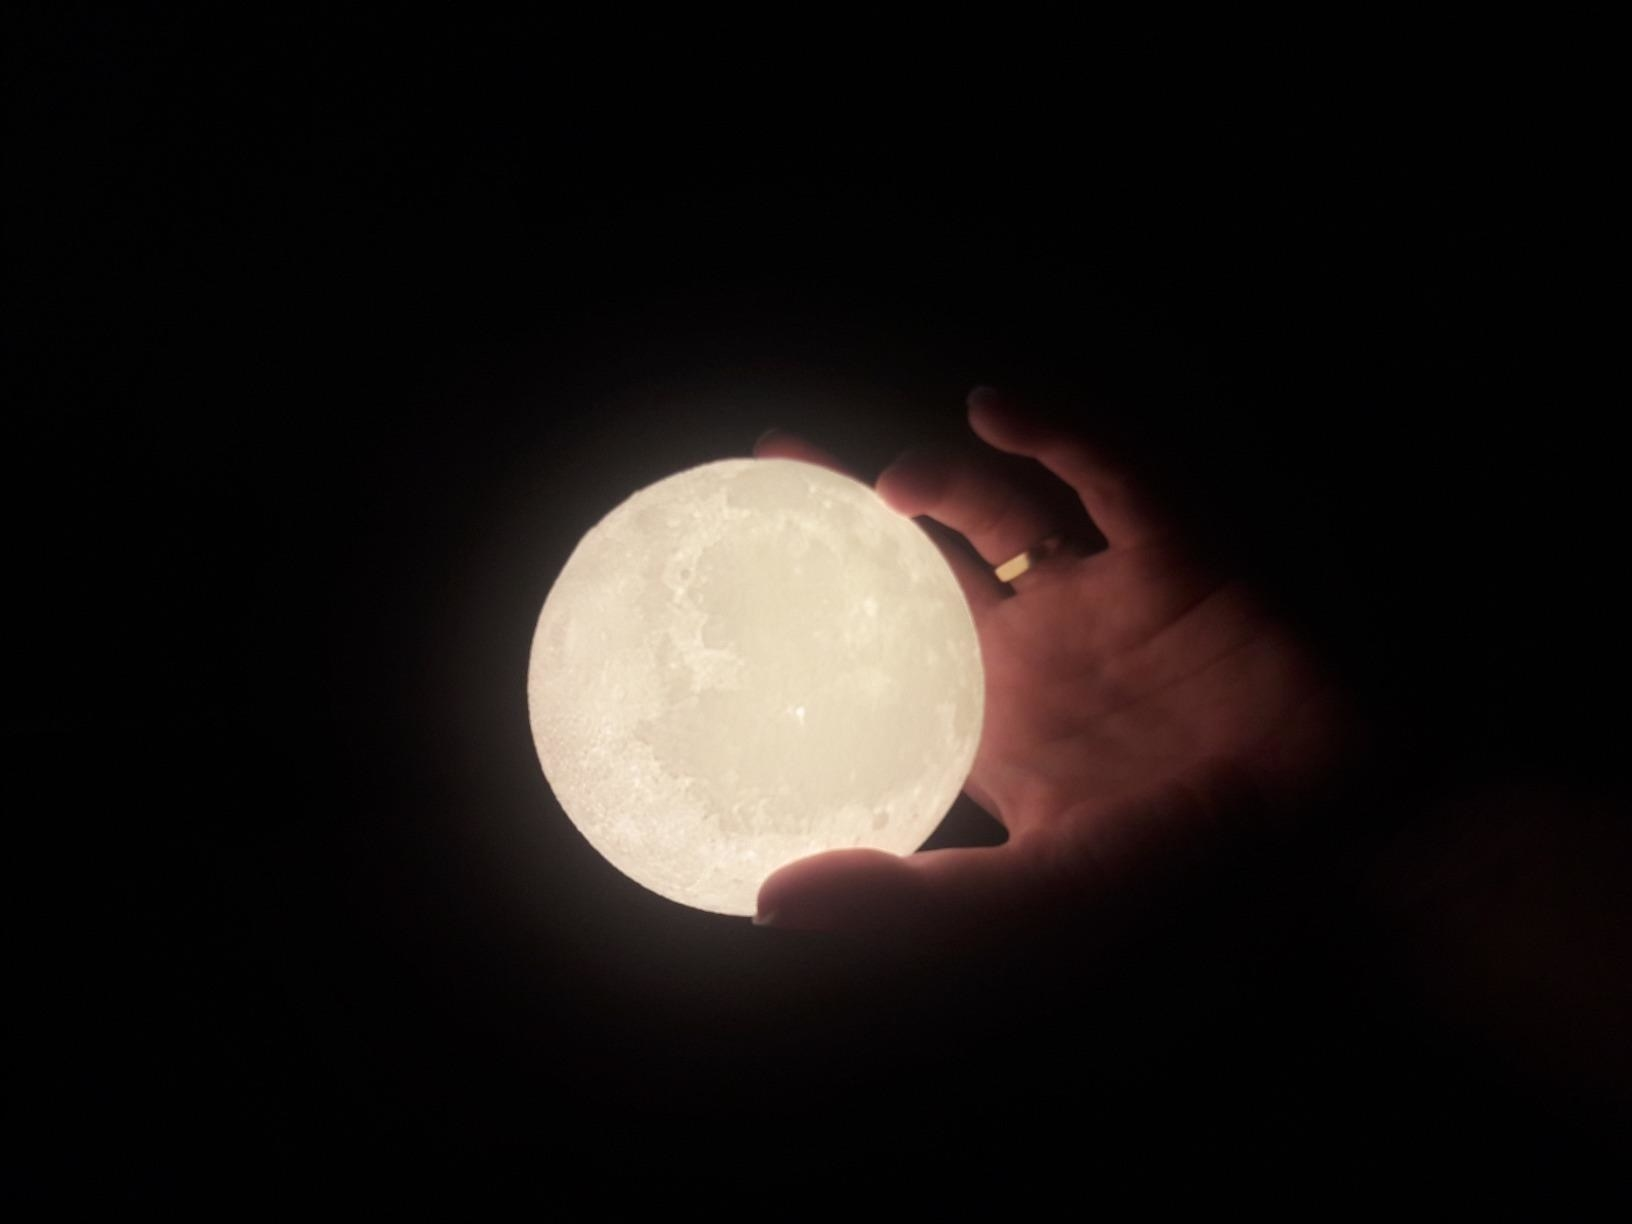 hand holds glowing moon light